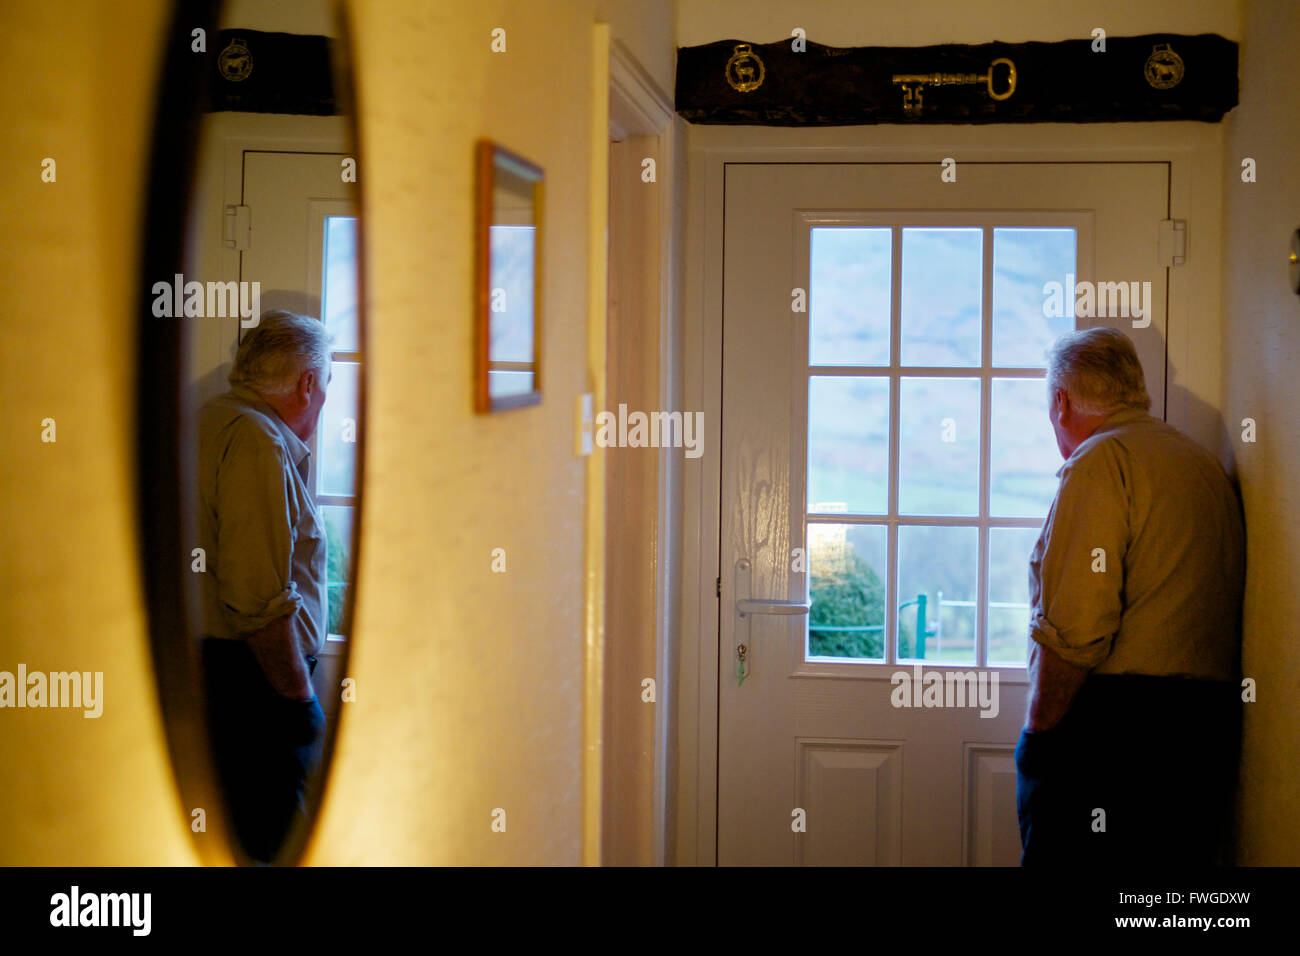 An Elderly Man Standing By A Door Looking Out Through The Window Panes.